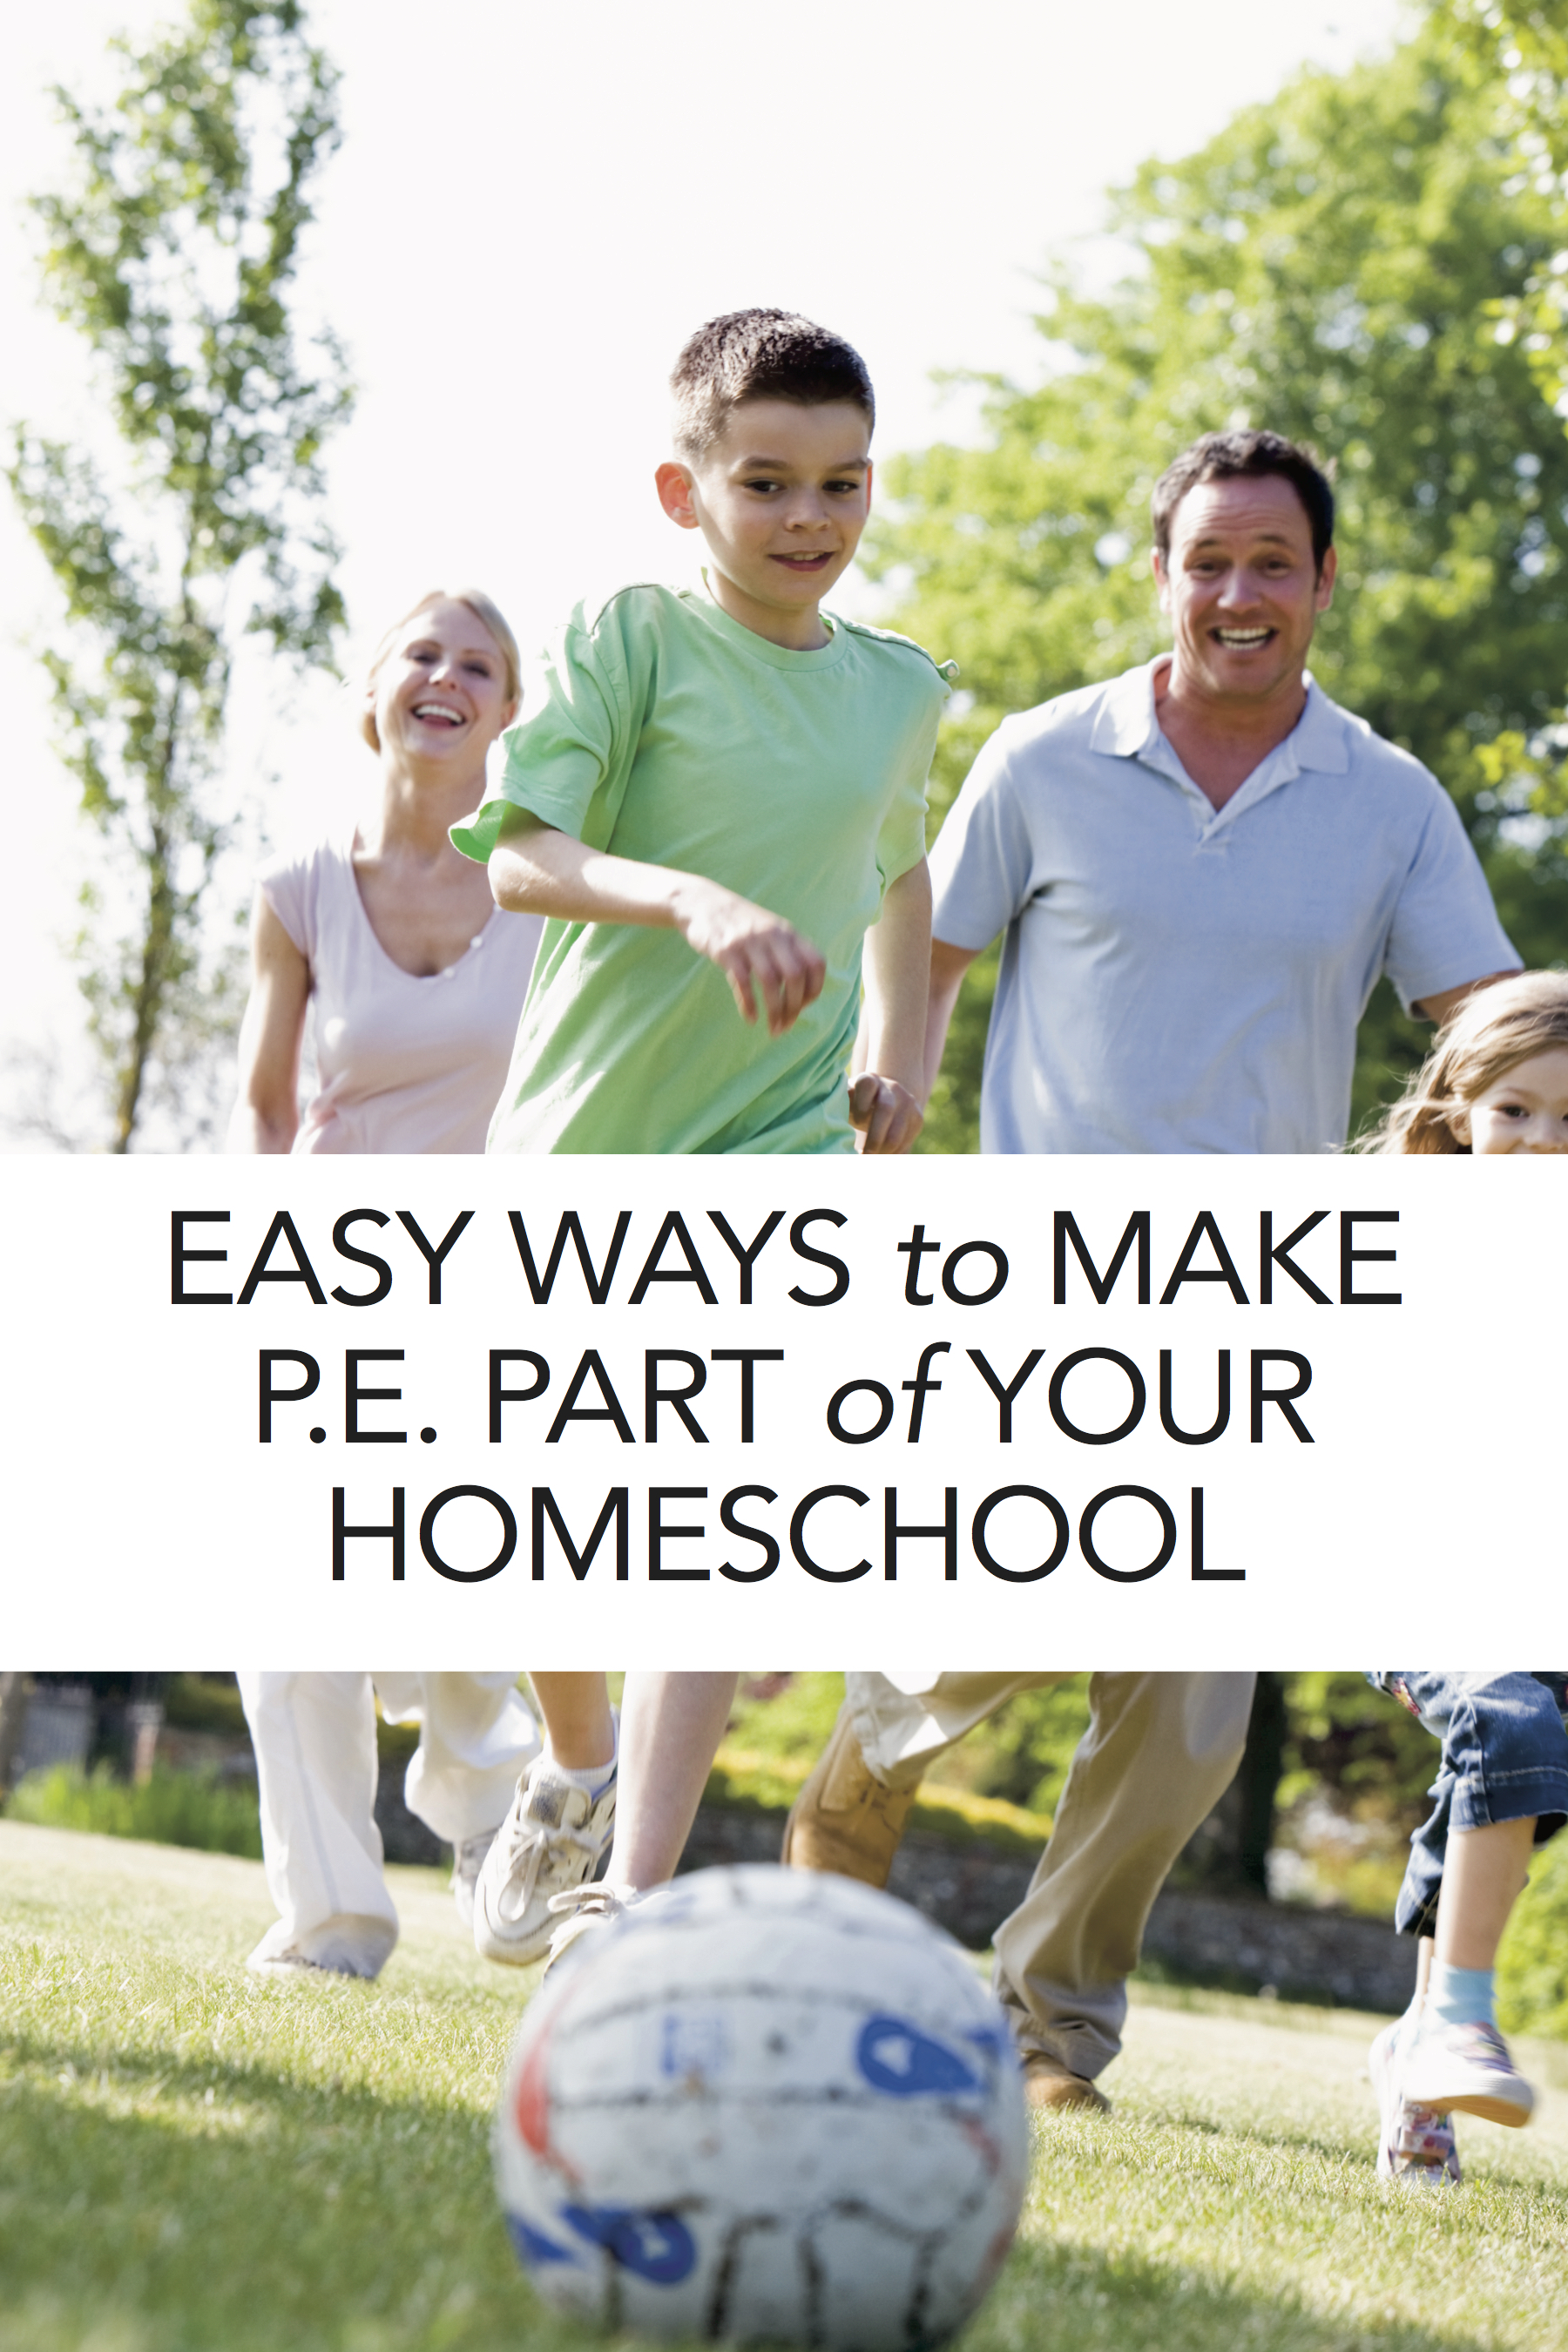 Tips and ideas for homeschooling P.E./physical education